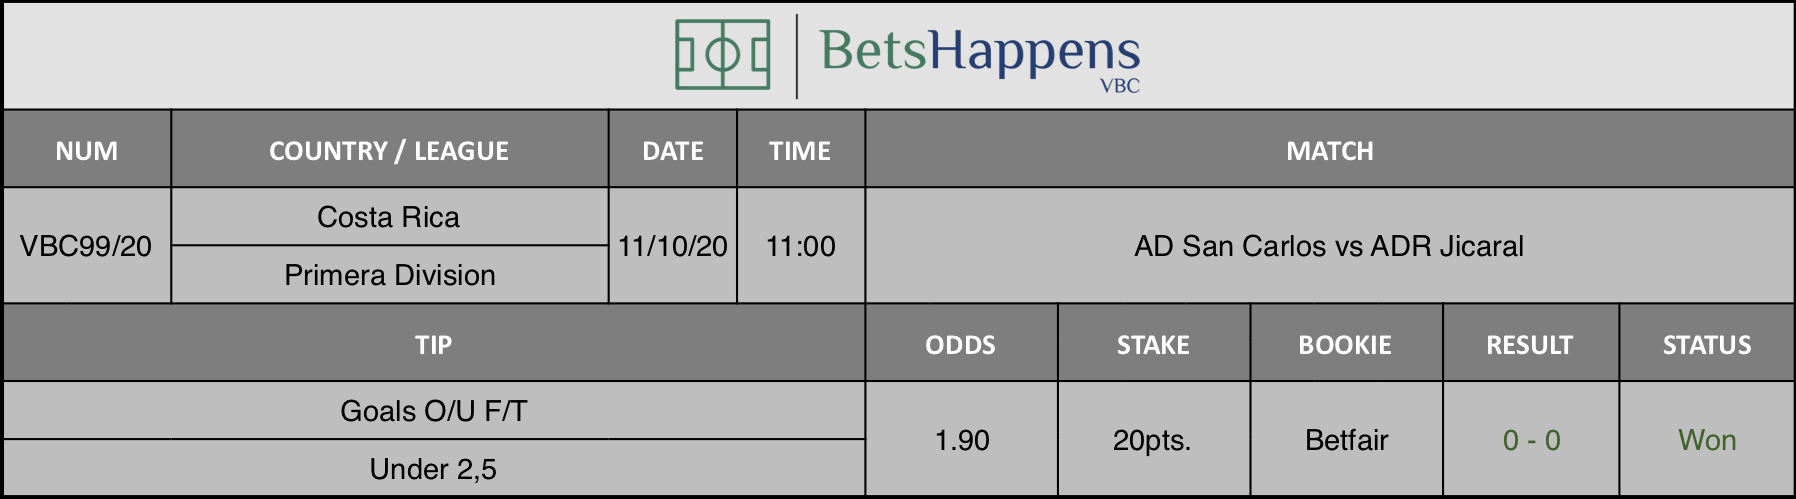 Results of our advice for the AD San Carlos vs ADR Jicaral match in which Goals O / U F / T Under 2,5 is recommended.